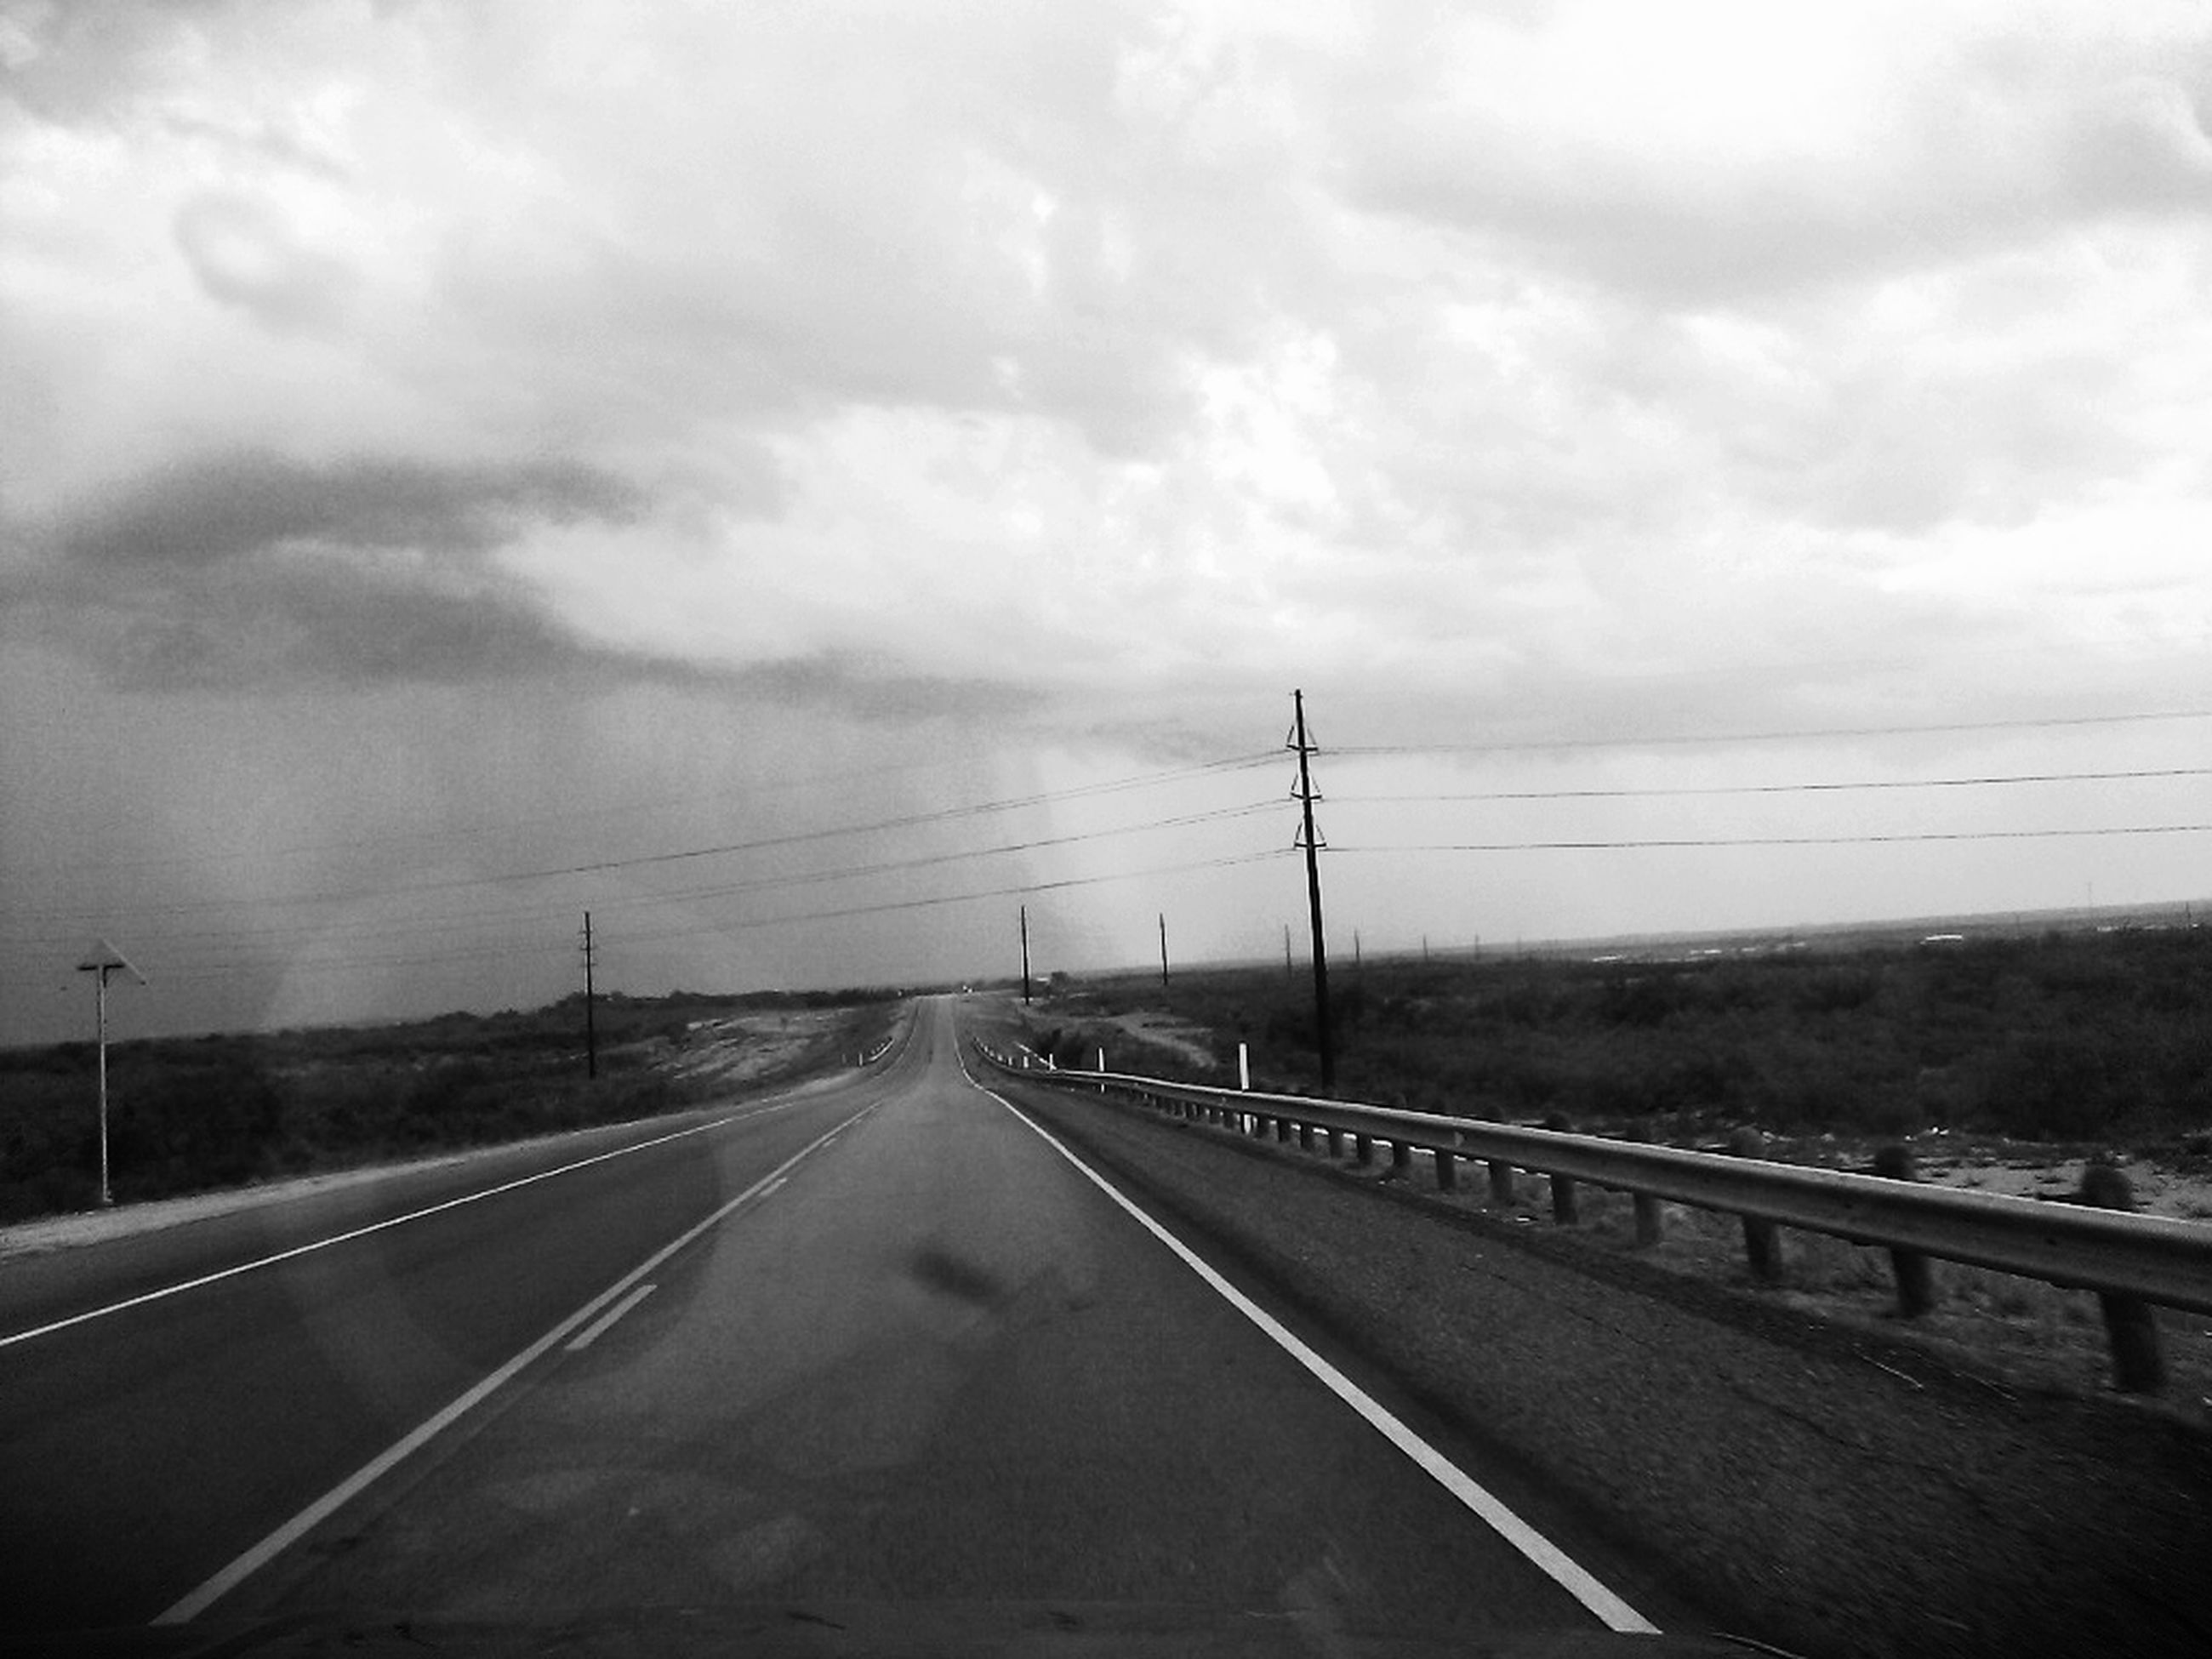 the way forward, transportation, road, sky, diminishing perspective, road marking, cloud - sky, vanishing point, cloudy, cloud, empty road, overcast, weather, highway, country road, empty, street, asphalt, landscape, nature